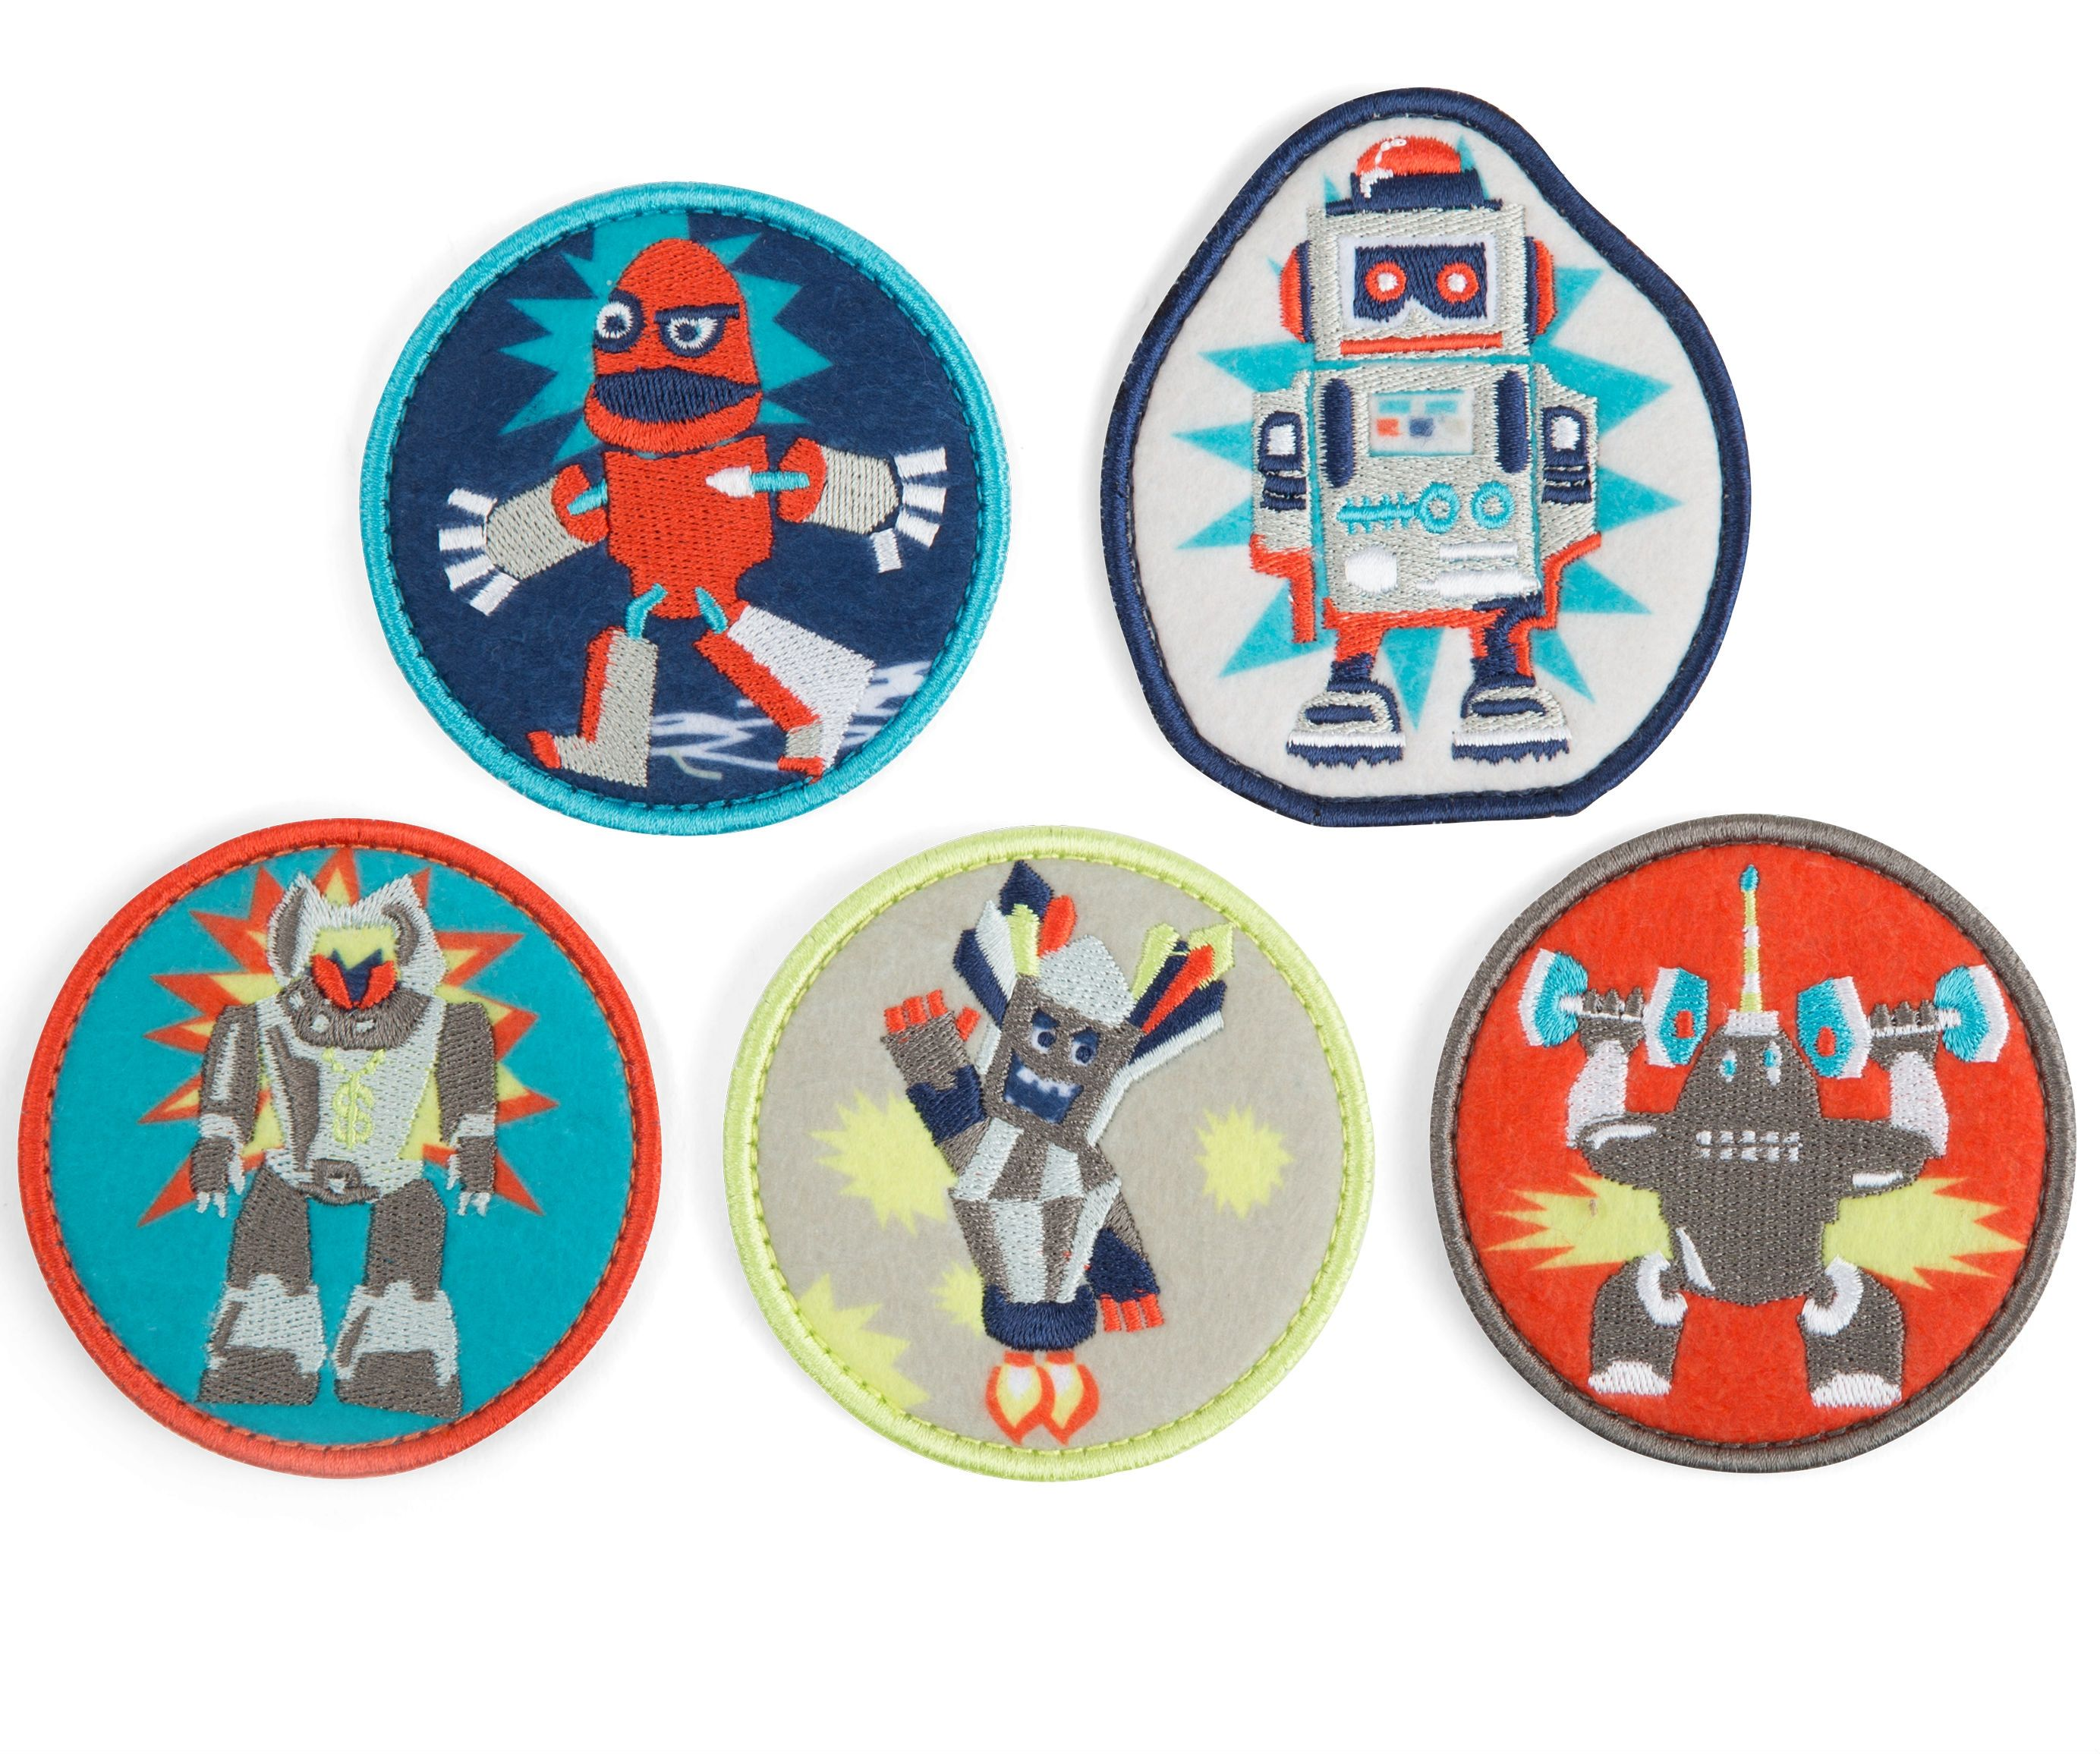 Image of Badges til Ergobag skoletaske - Fancy Kletties - Tekstil - Robotter (erg-kle-002-028(Fancy))